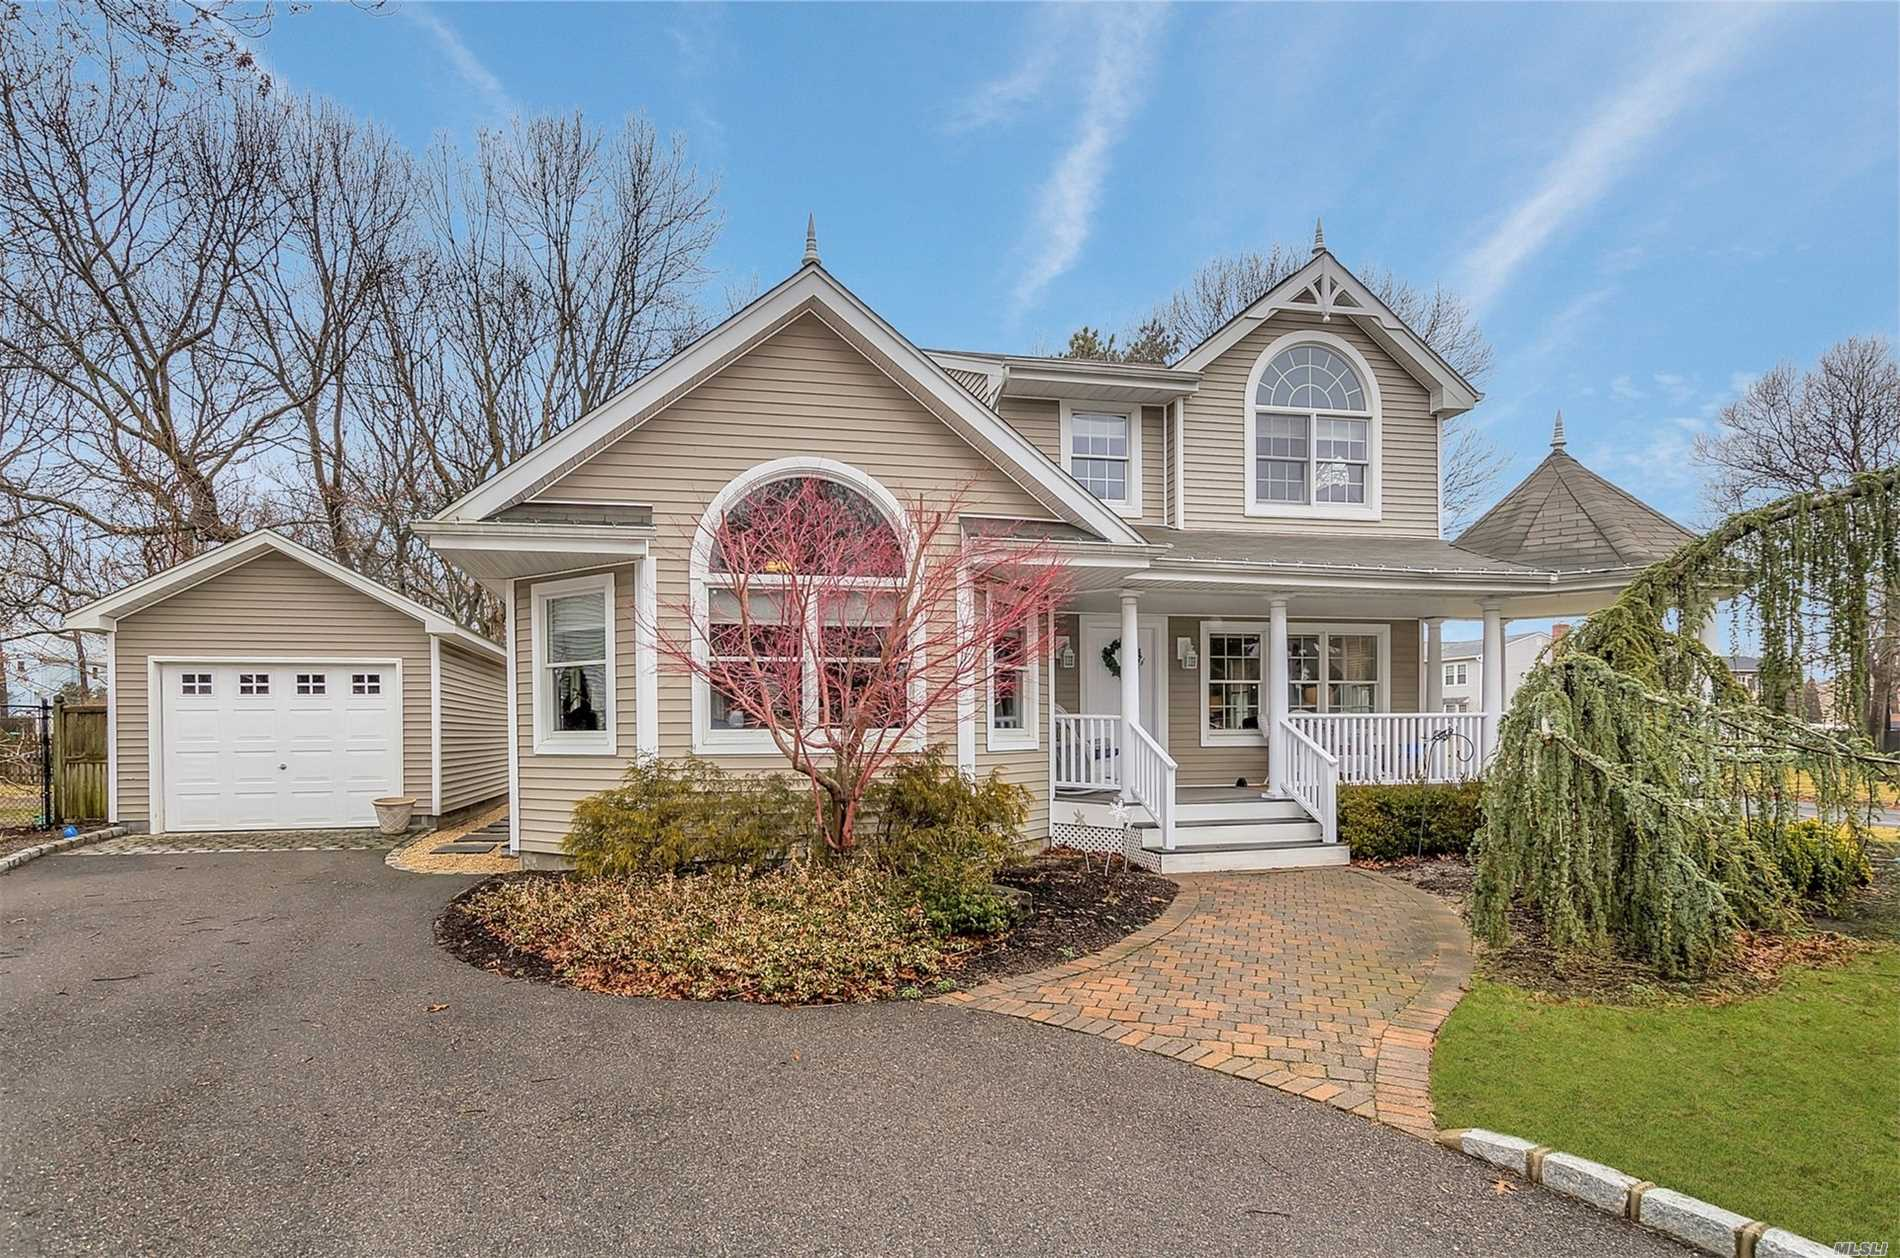 Fabulous Victorian With New Quartz Kitchen, Custom Woodwork Throughout, New Bath, New Laminate Flooring, Andersen Windows, Light & Bright With Walls Of Windows And Cathedral Ceilings! Southern Exposure! Move In Condition.